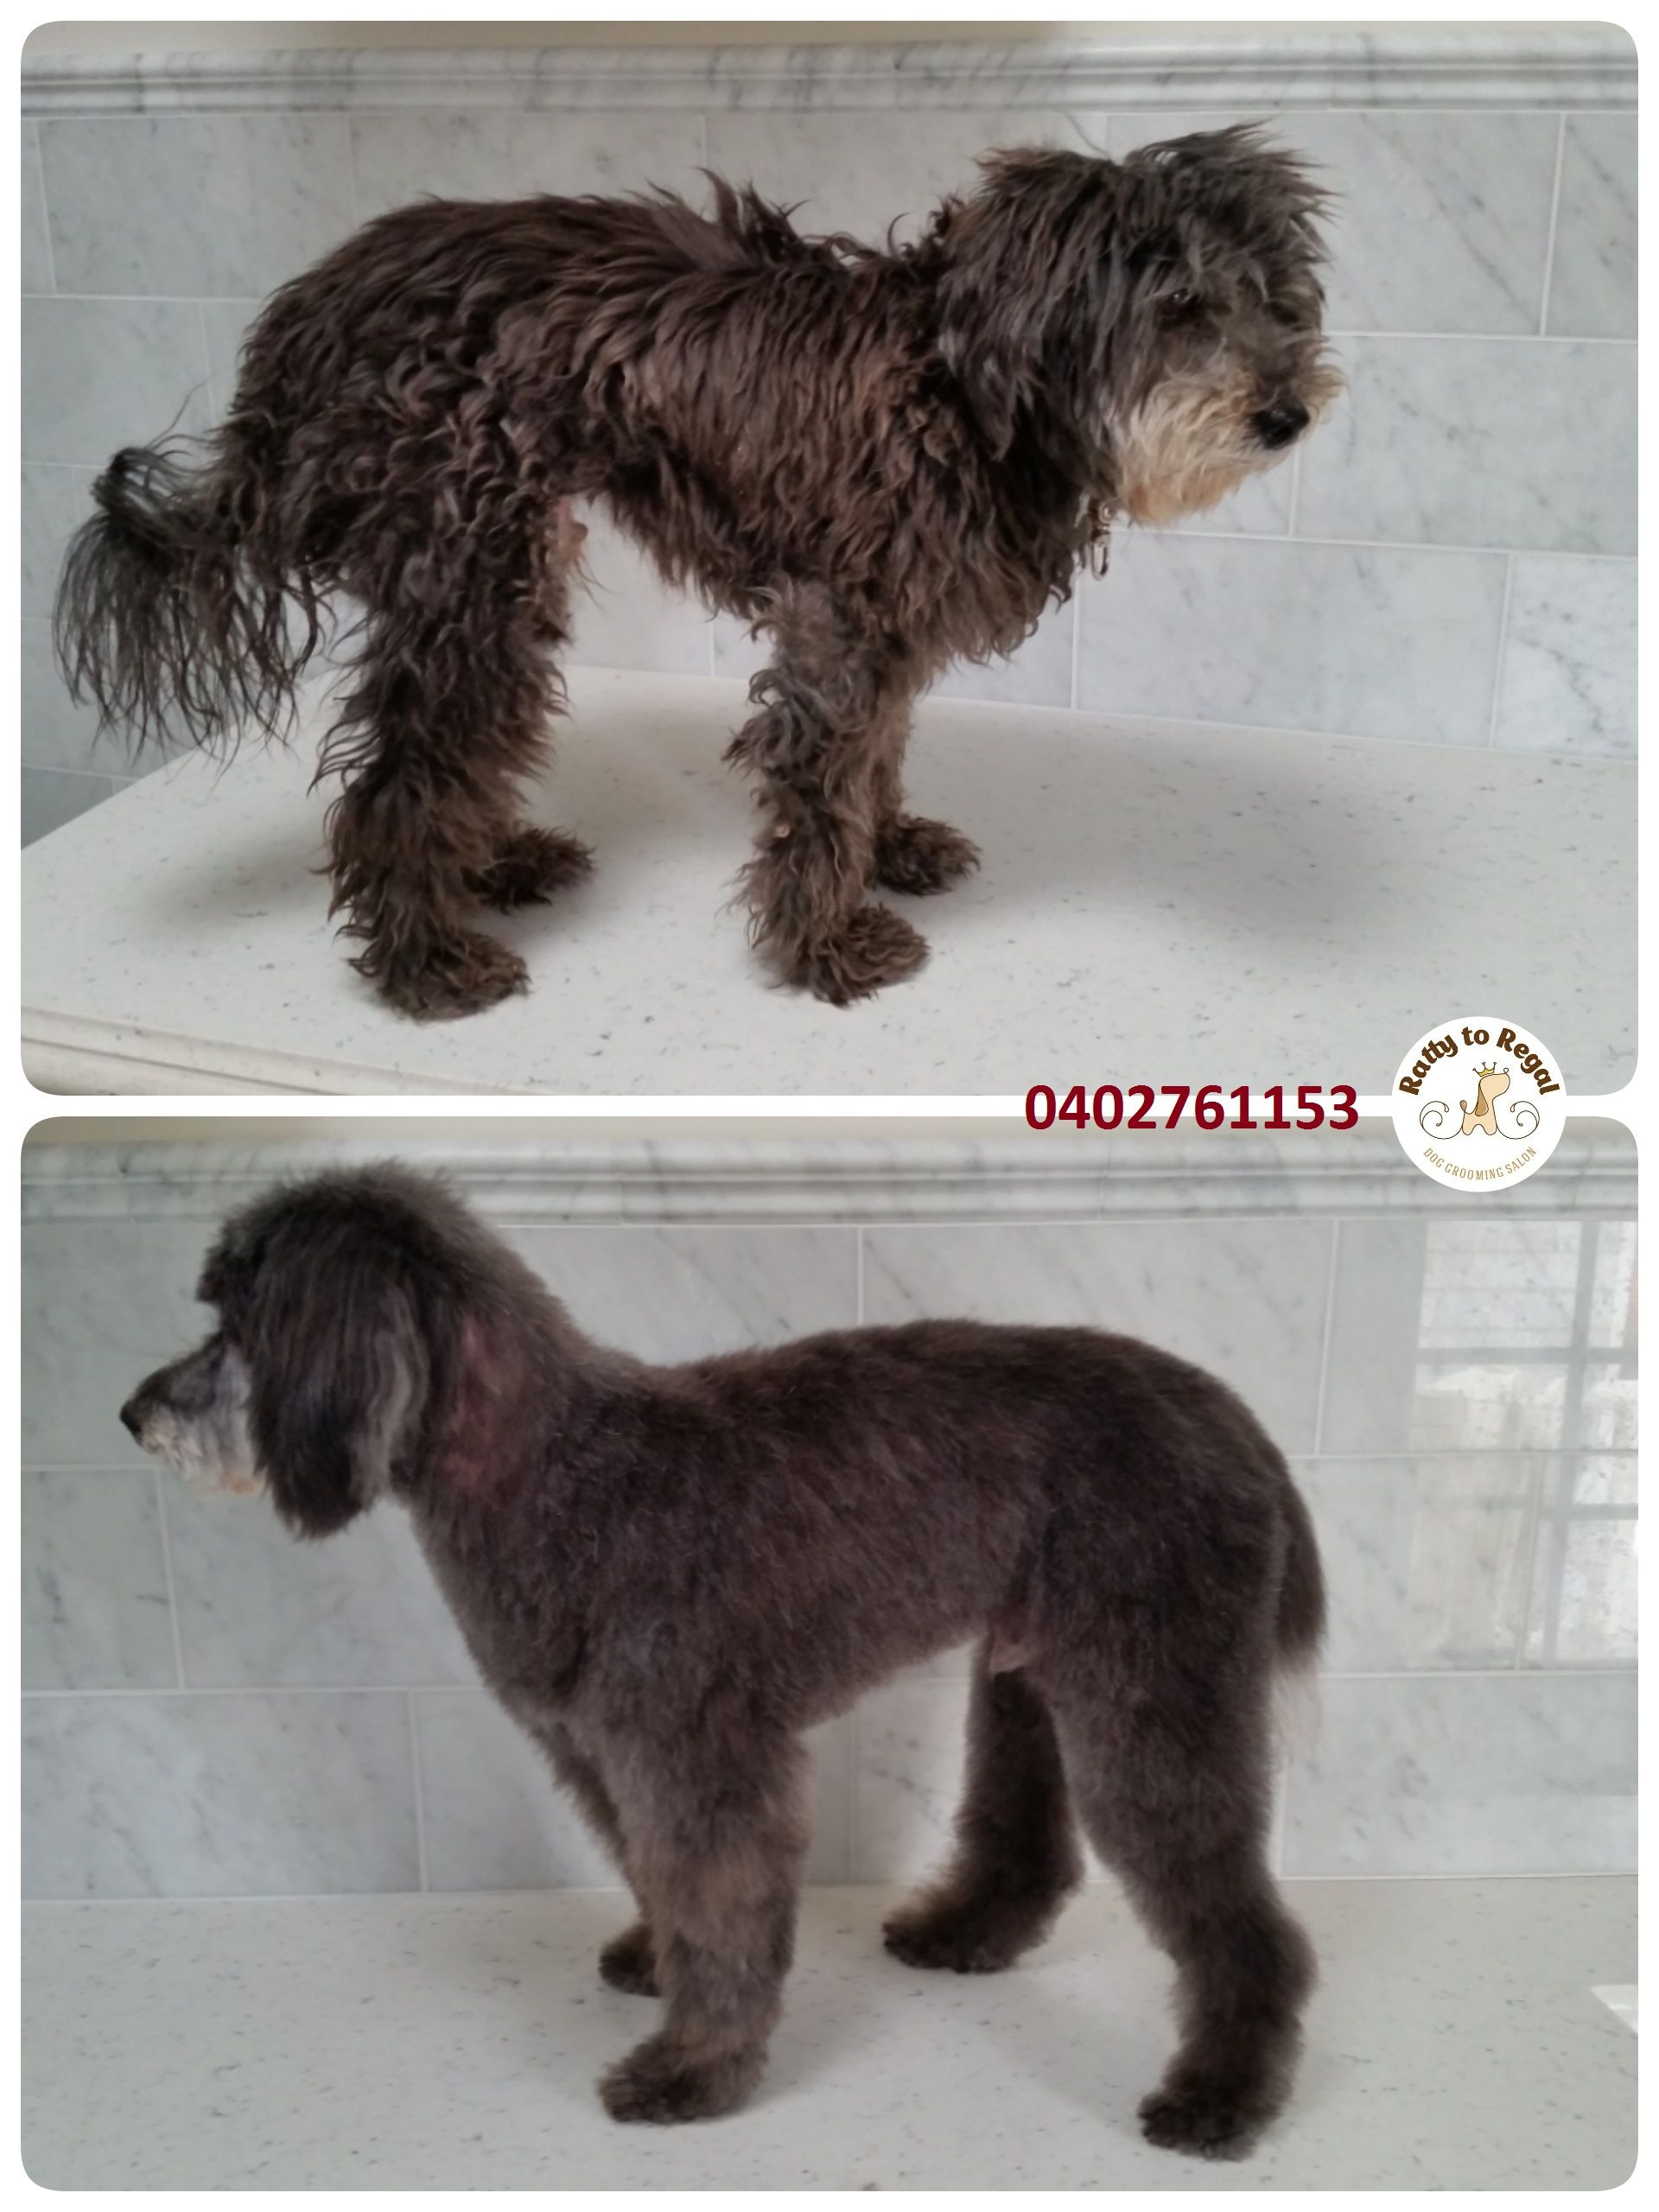 Pin On Before After Dog Grooming Photos